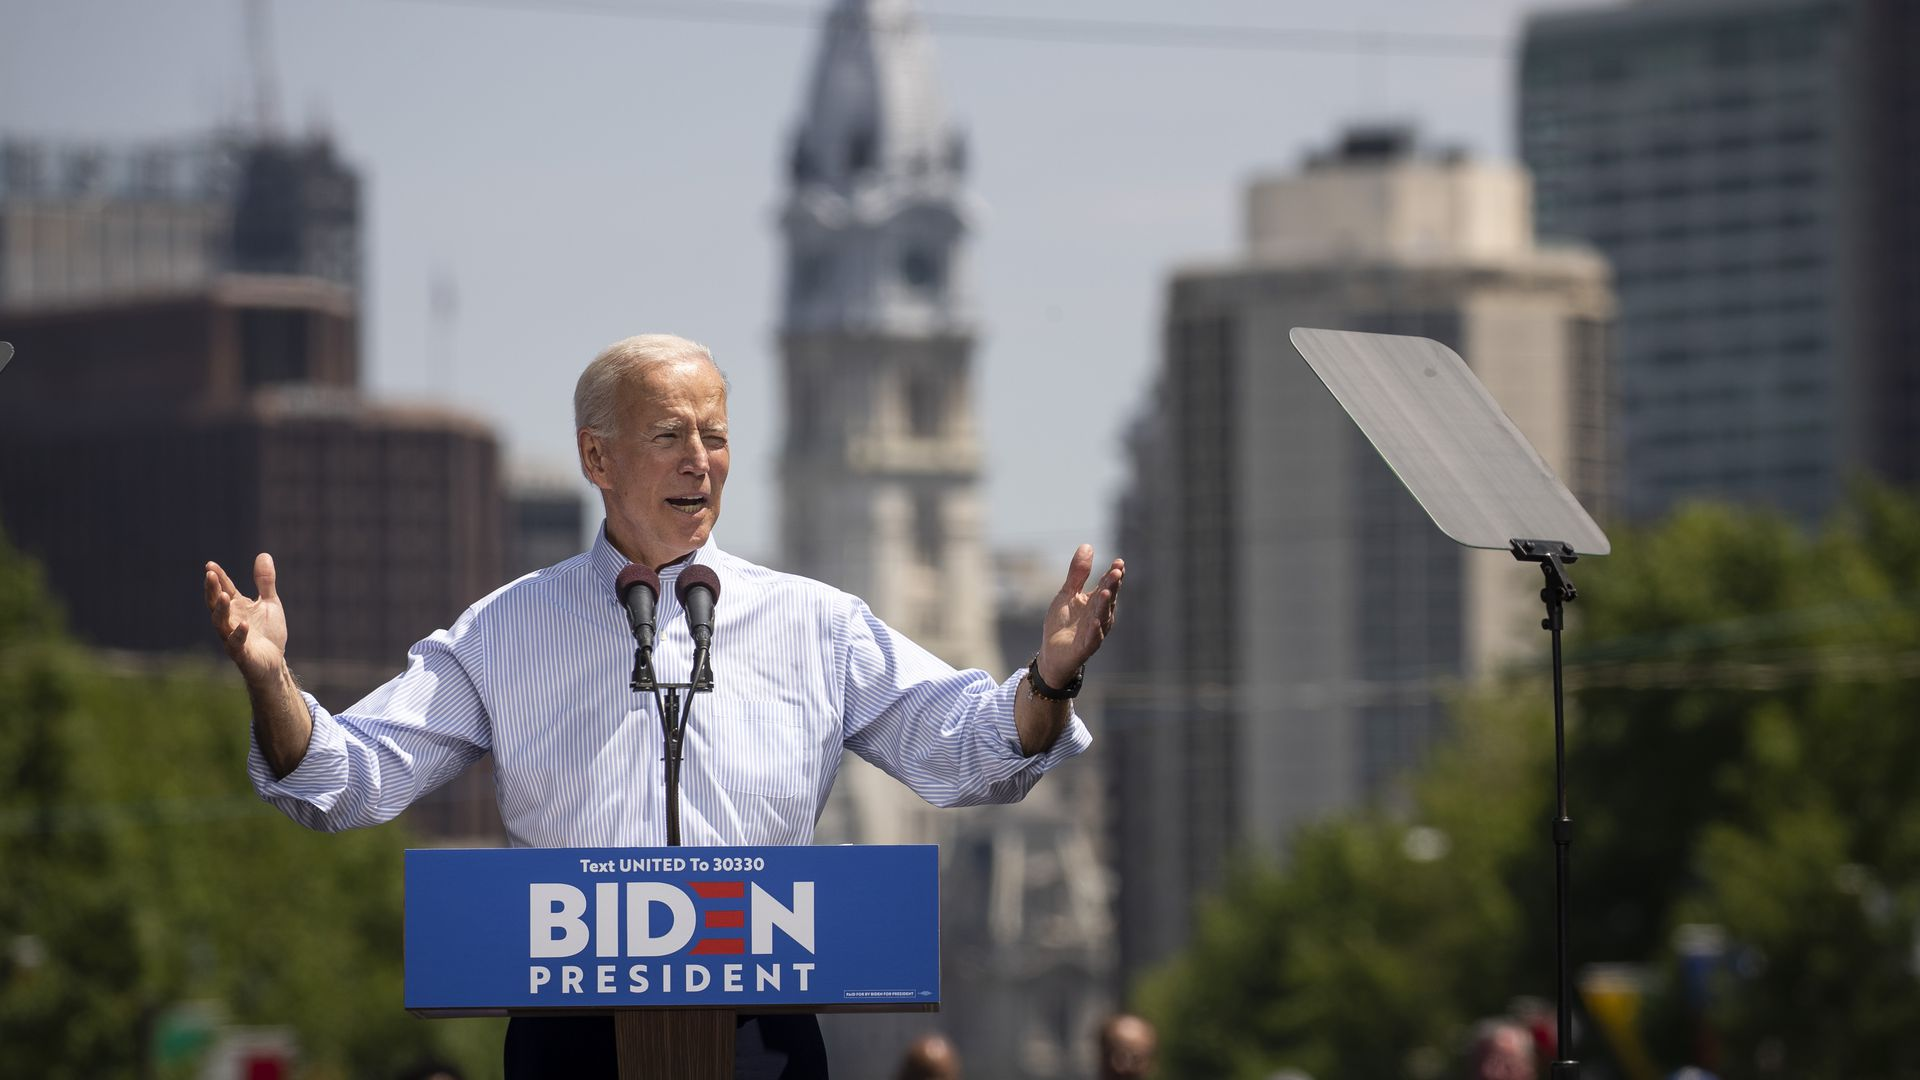 Former Vice President Joe Biden rolls out 2020 education policy